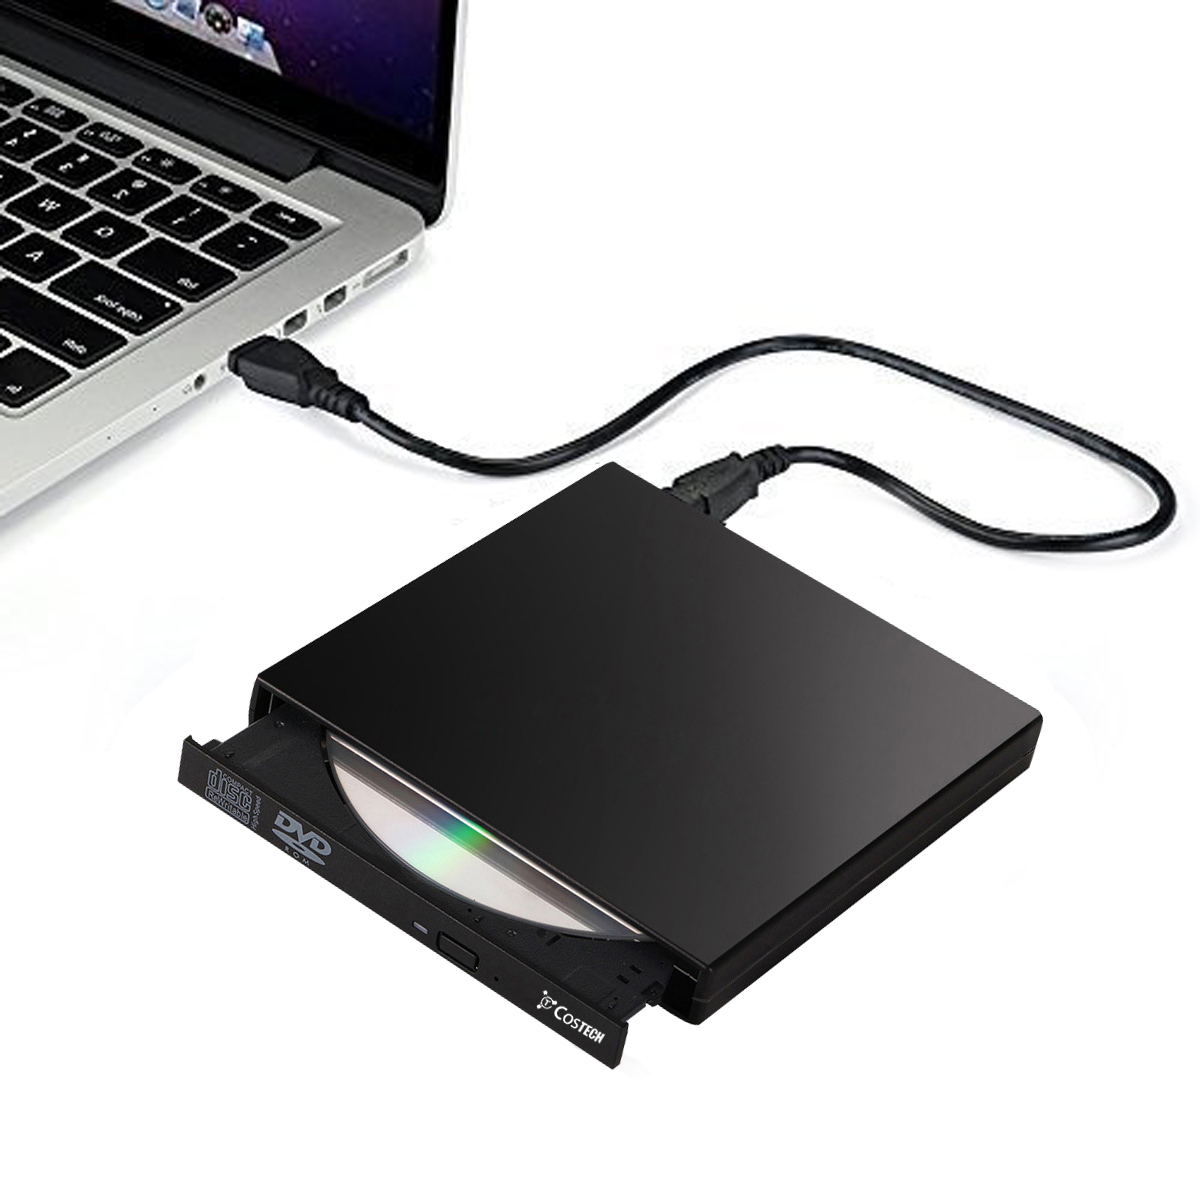 Costech USB 2.0 External Drive Slim Portable CD-RW Drive DVD-R Combo Burner Player for PC Laptop Notebook Desktop Computer